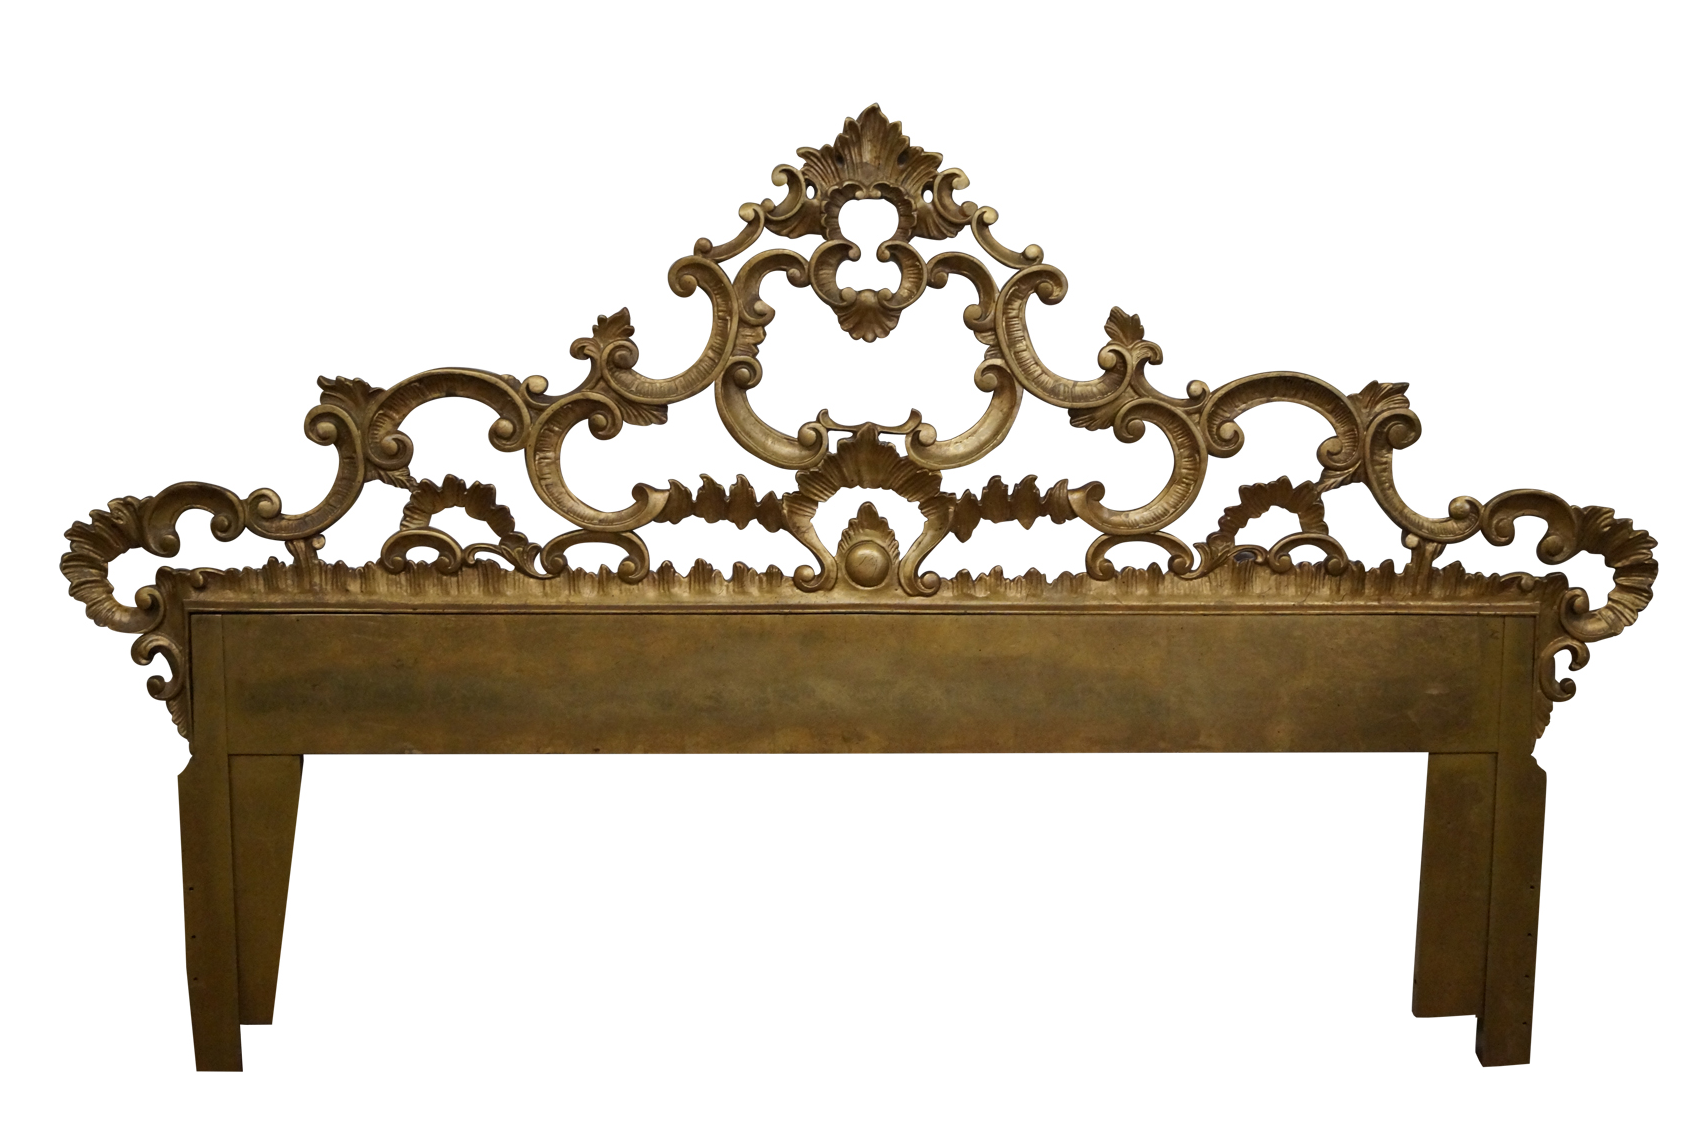 Gilt metal ornate rococo style headboard chairish geotapseo Gallery